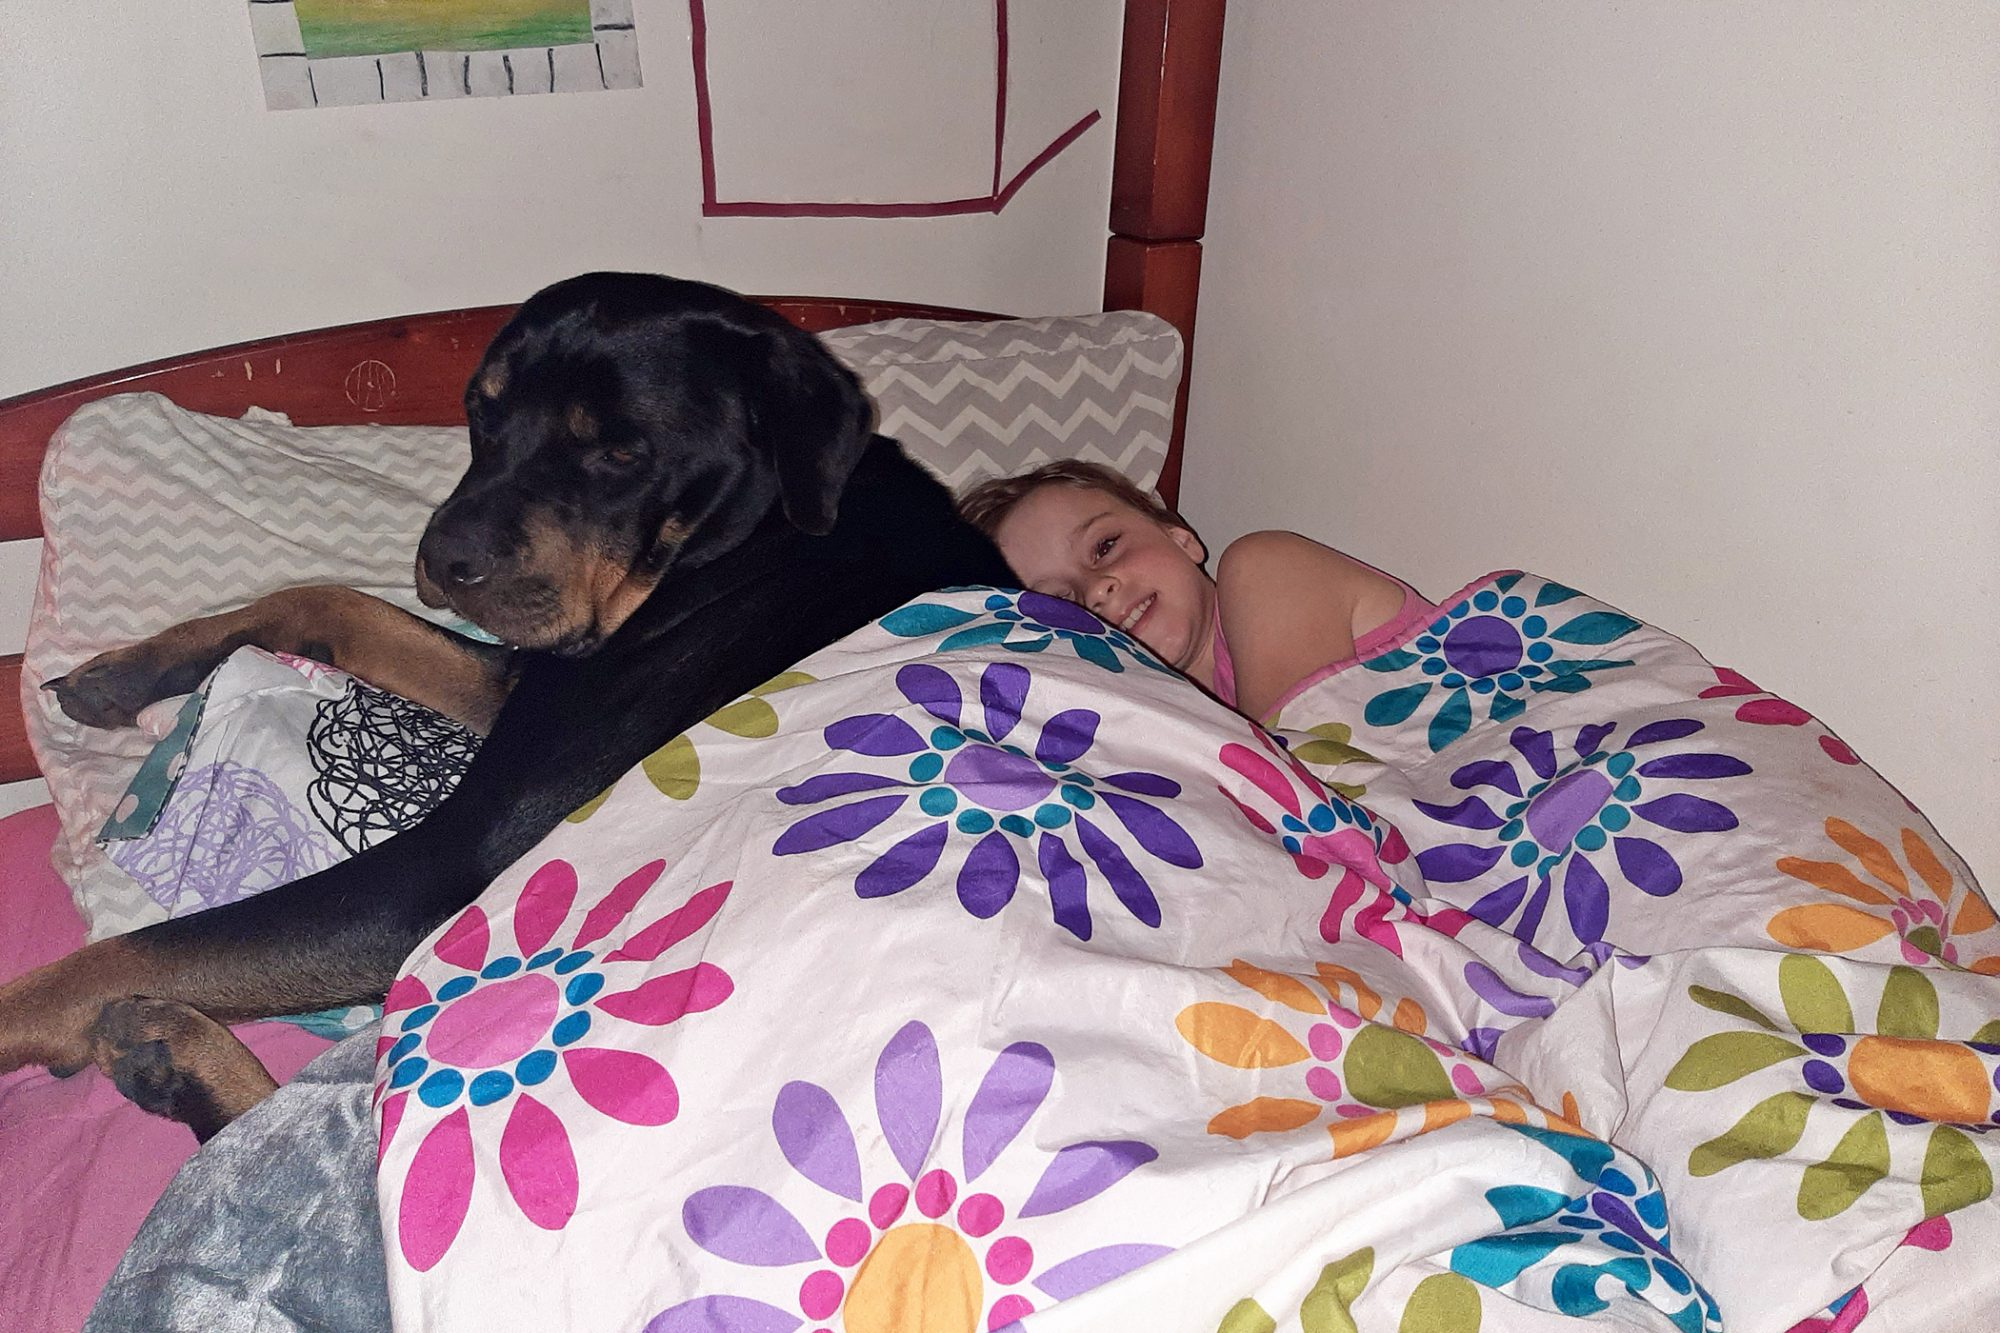 Large dog crowds child's bed